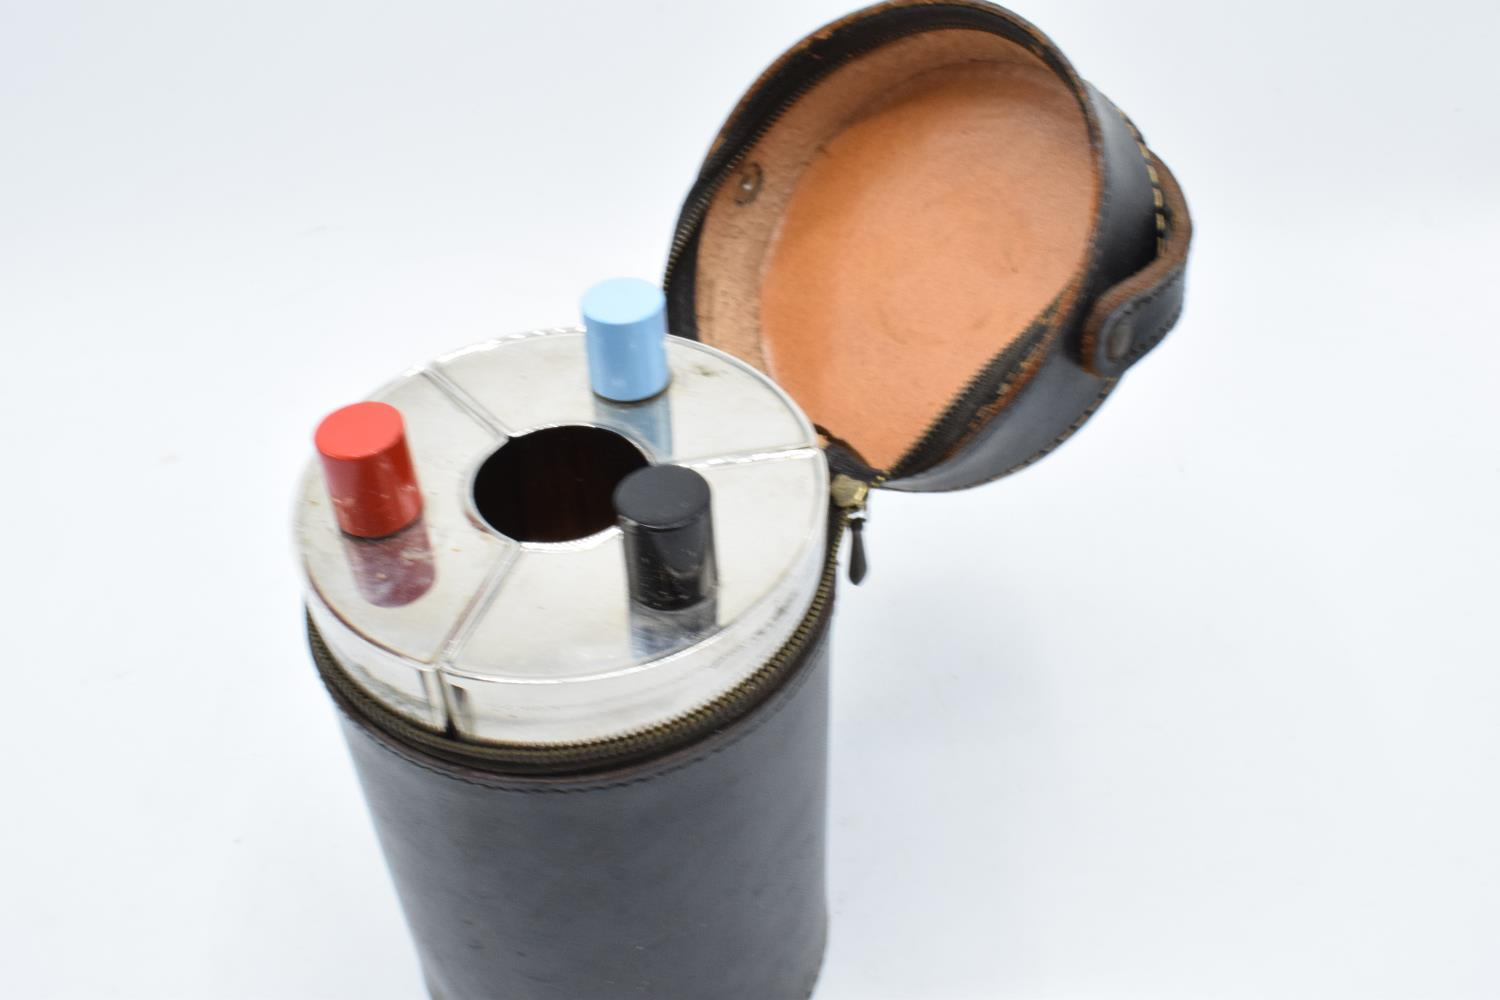 A 20th century travelling drinks set to include 3 flasks and 4 cups in a leather carry case. - Image 3 of 3